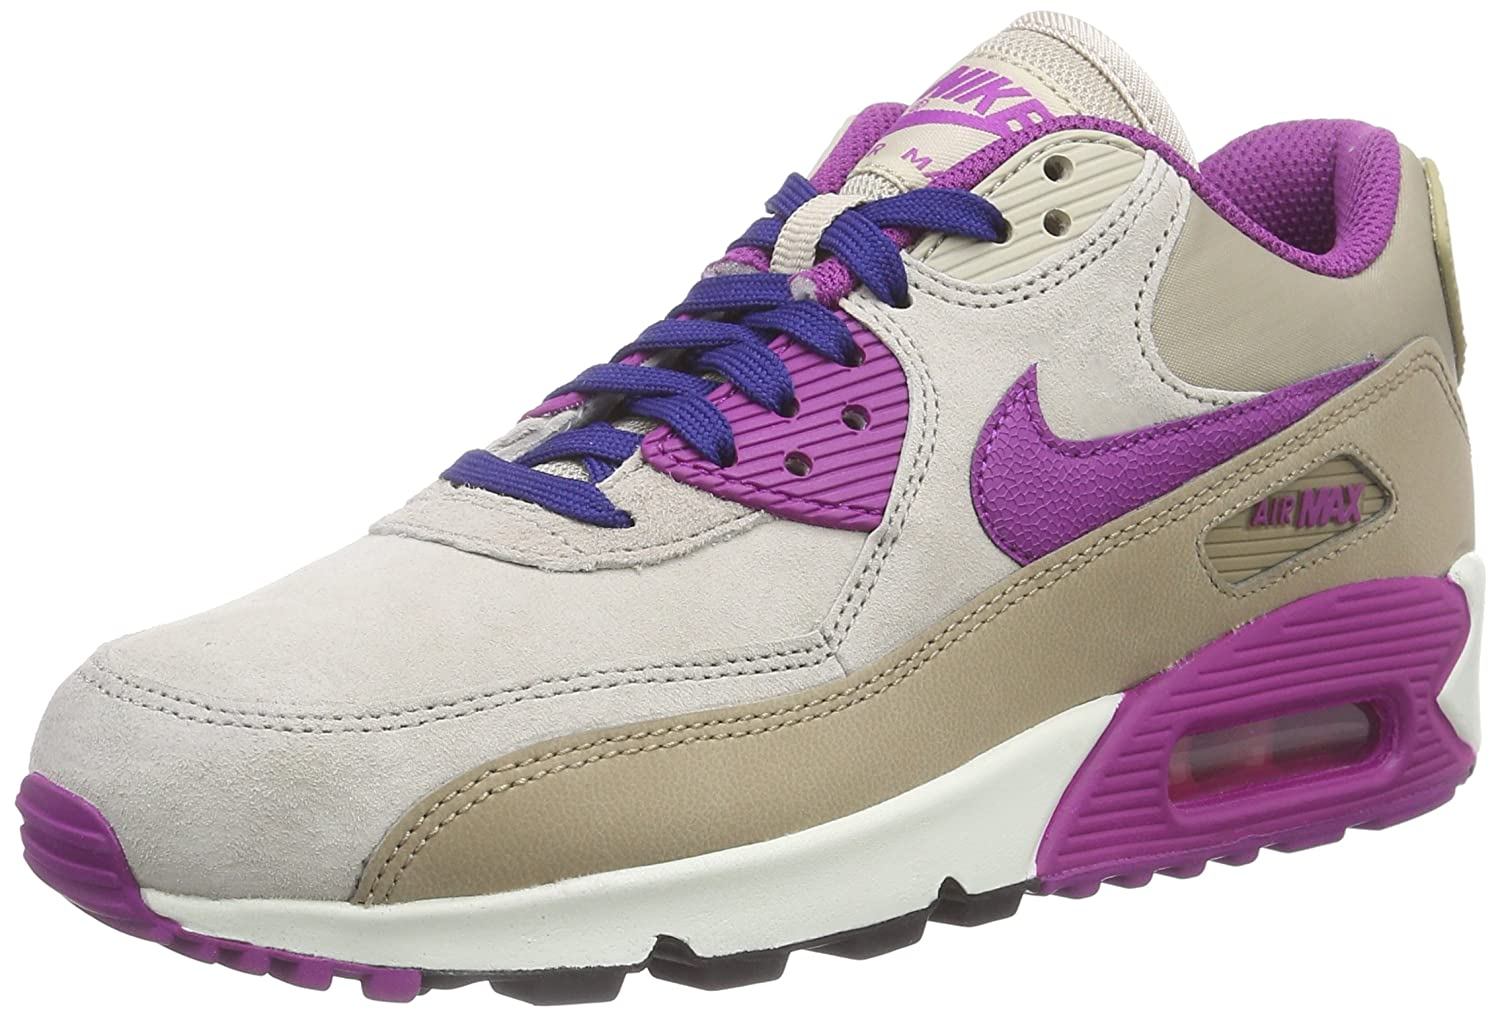 Nike Womens Air Max 90 LTR Trainers 768887 Sneakers Shoes